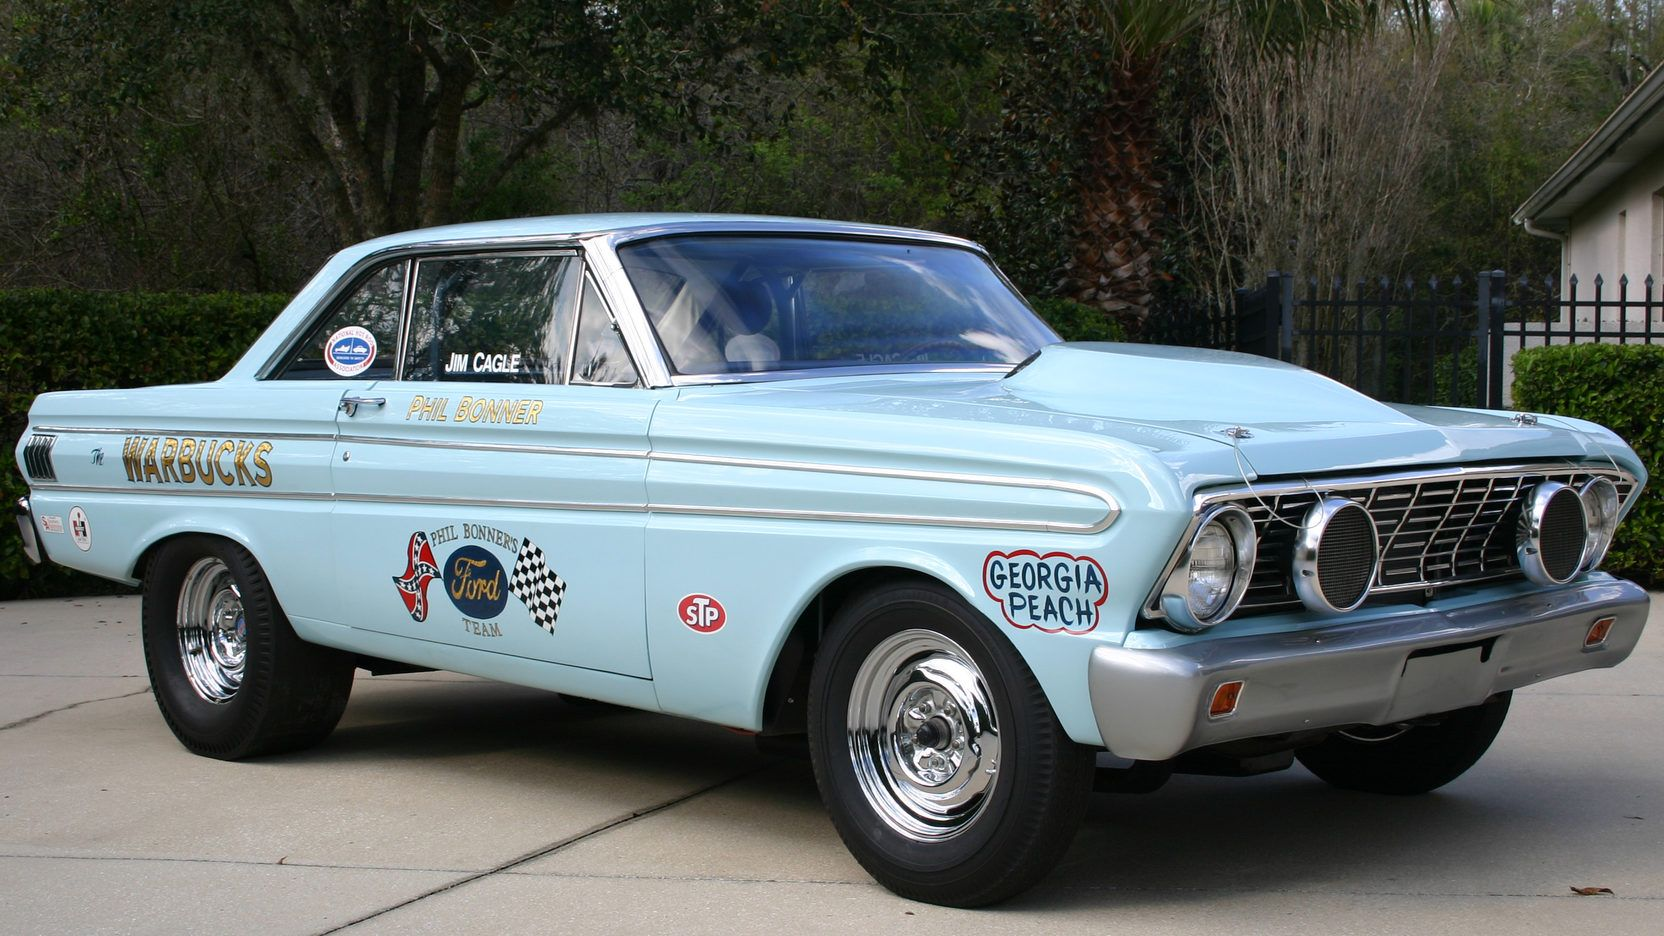 1961 ford falcon for sale racingjunk classifieds - 1964 Ford Falcon A Fx Replica Built 427 2x4v V8 T10 4speed